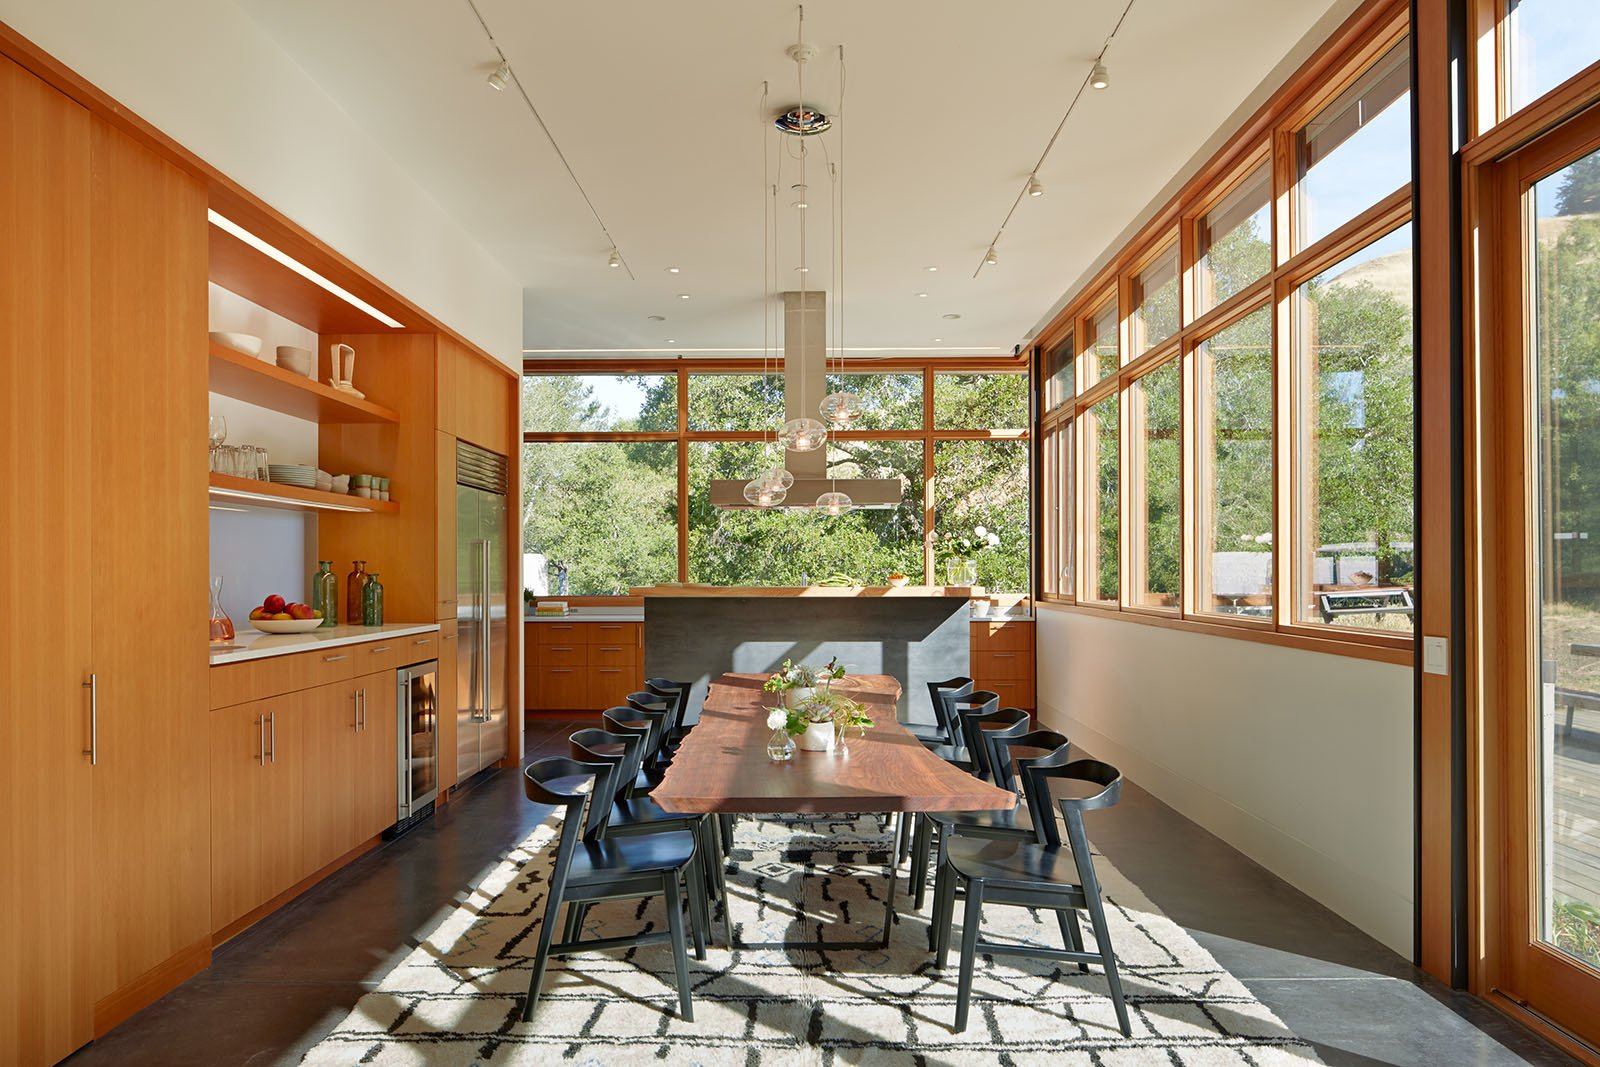 Crook | Cup | Bow | Twist by Schwartz and Architecture